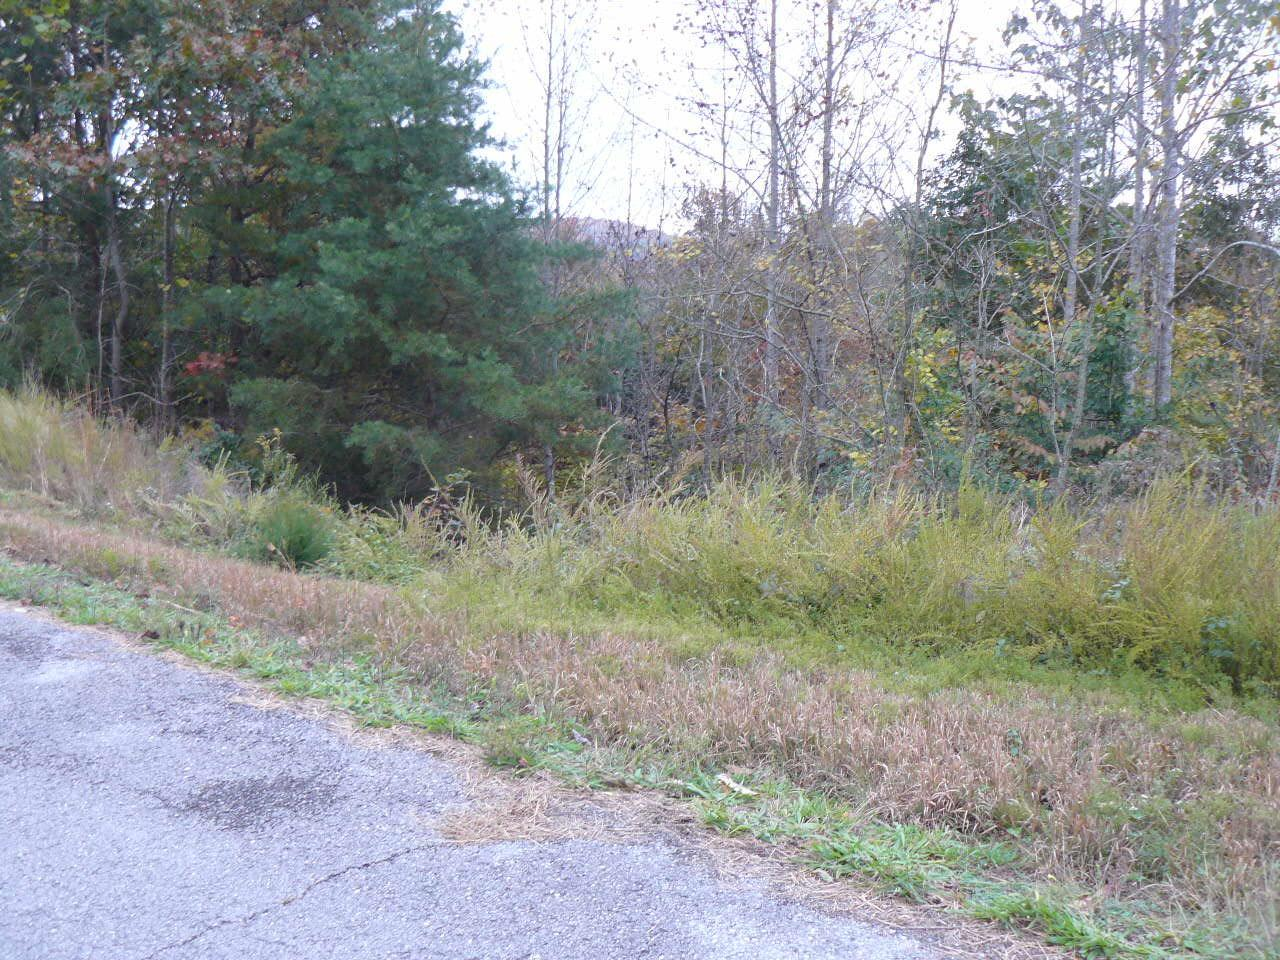 Lot 708 Whistle Valley Rd - Photo 1